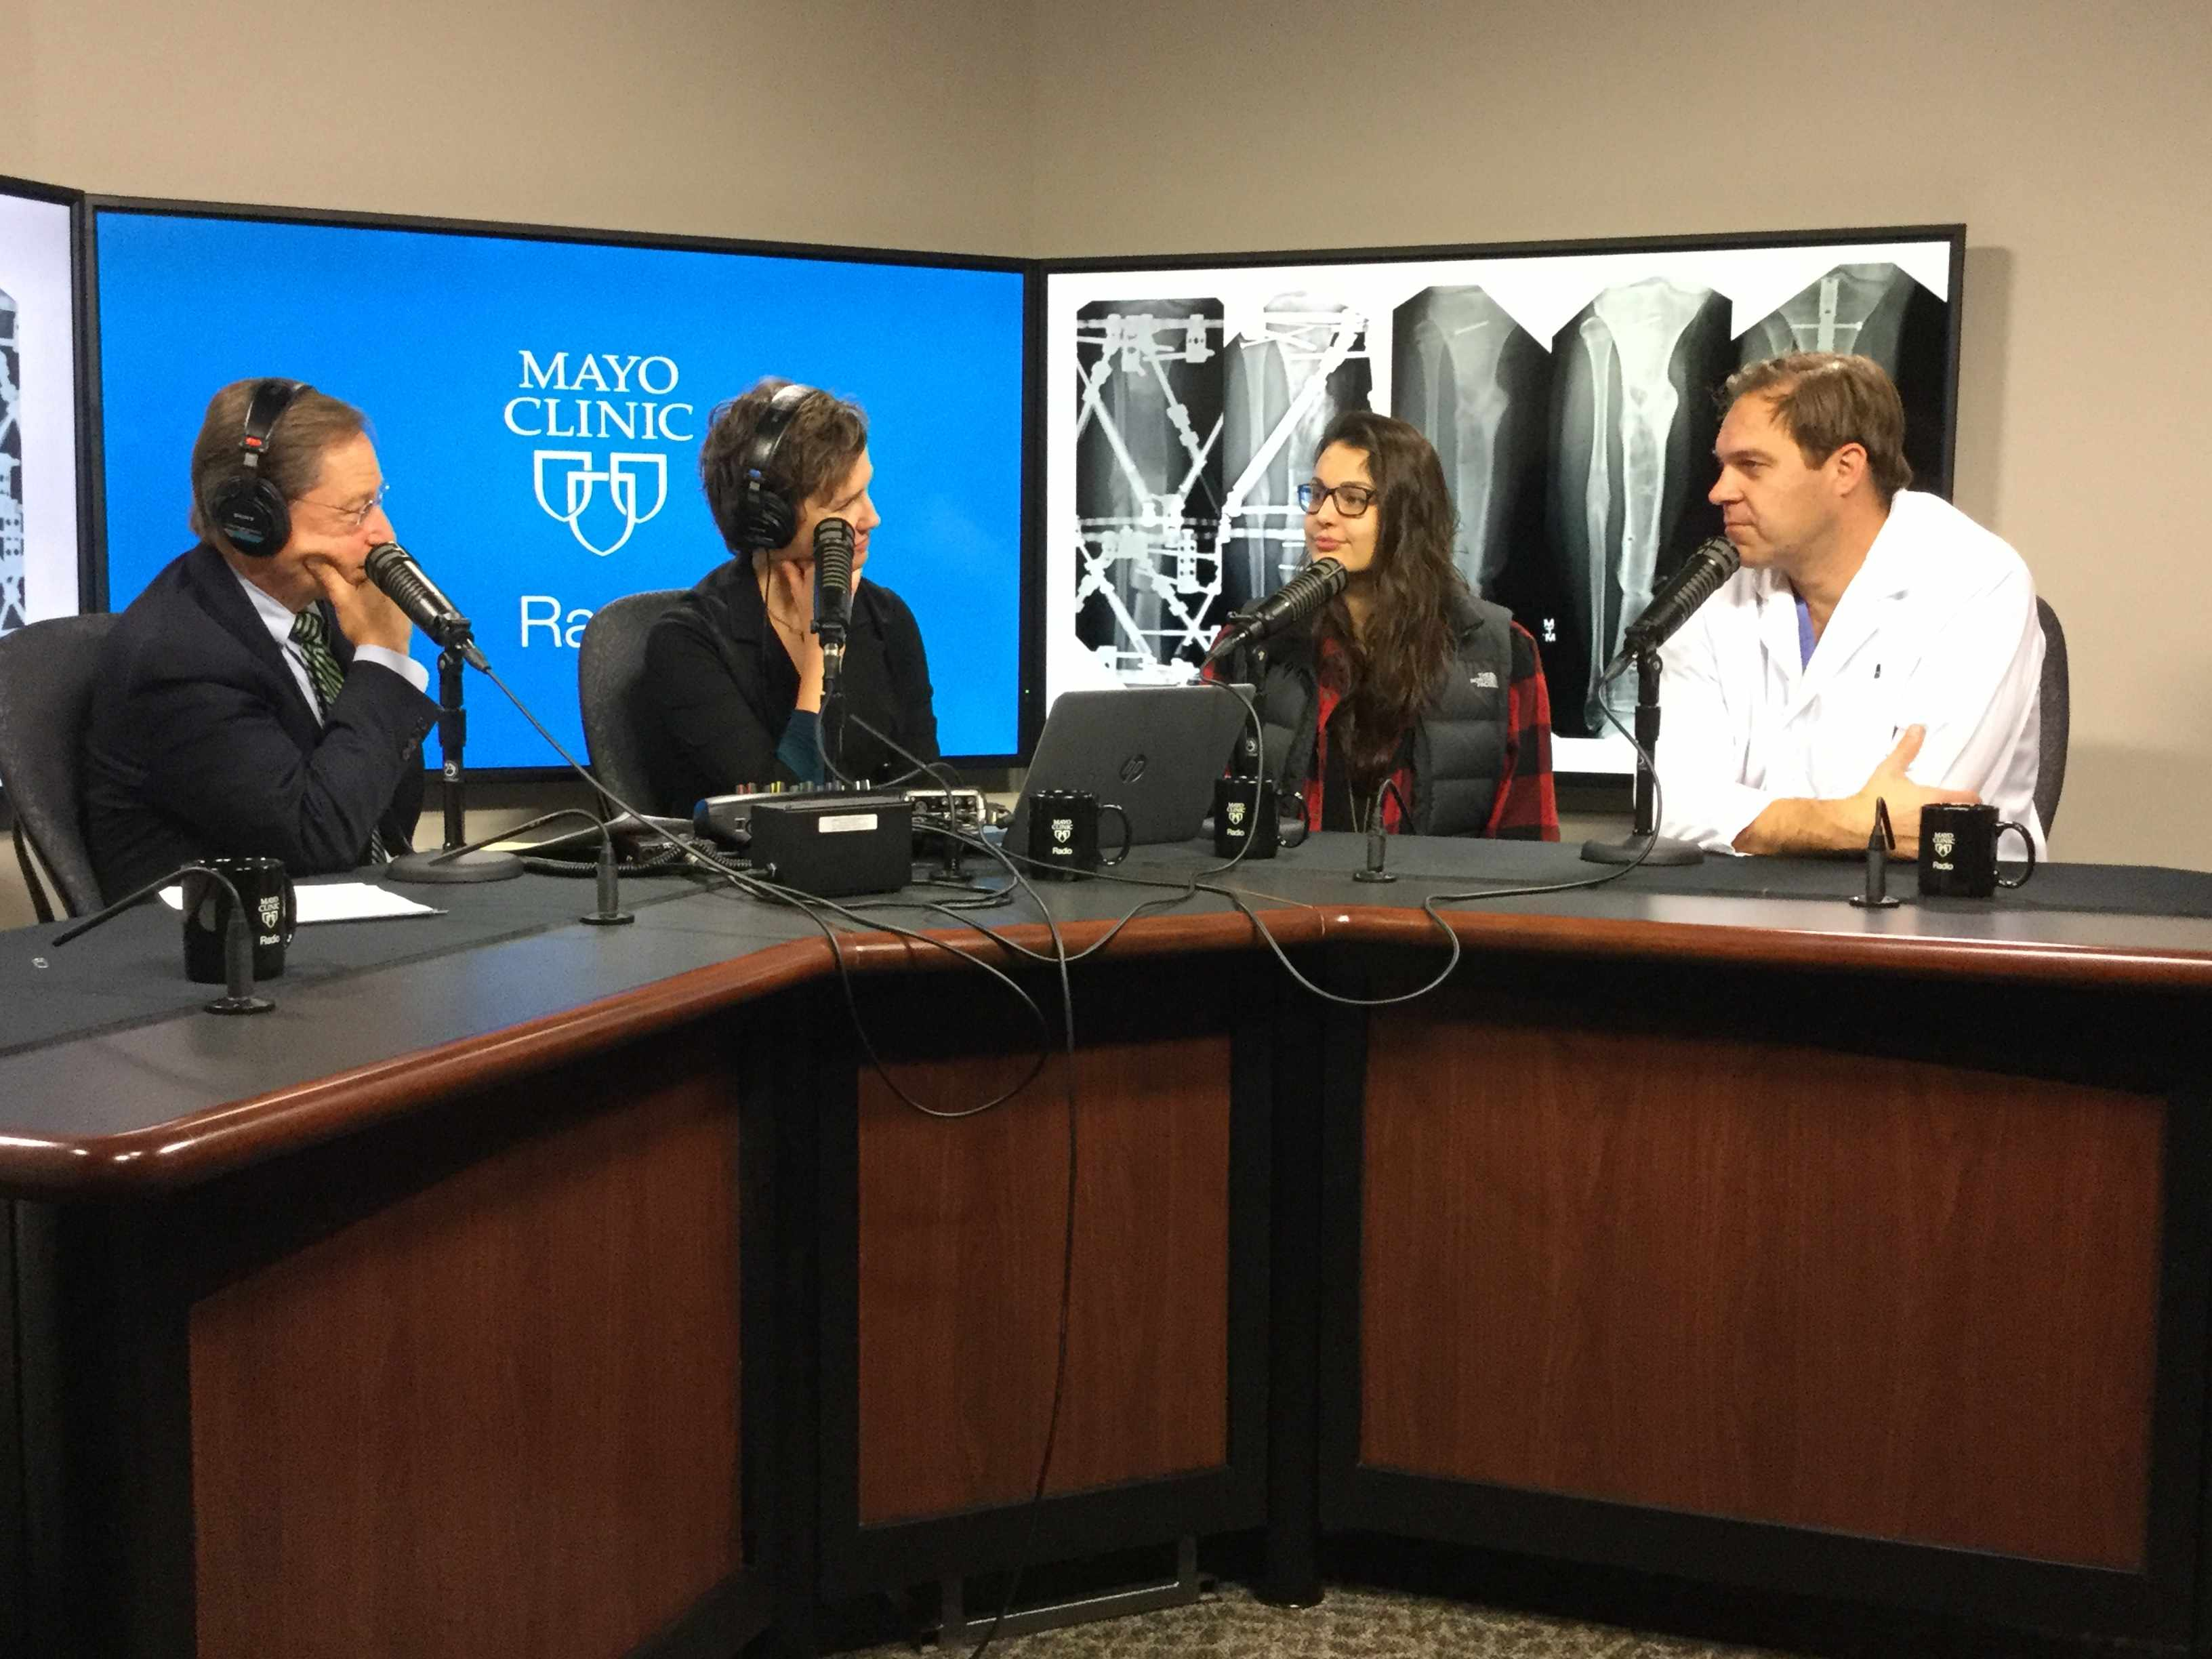 Dr. Andy Sems and Jessica Nelson being interviewed on Mayo Clinic Radio